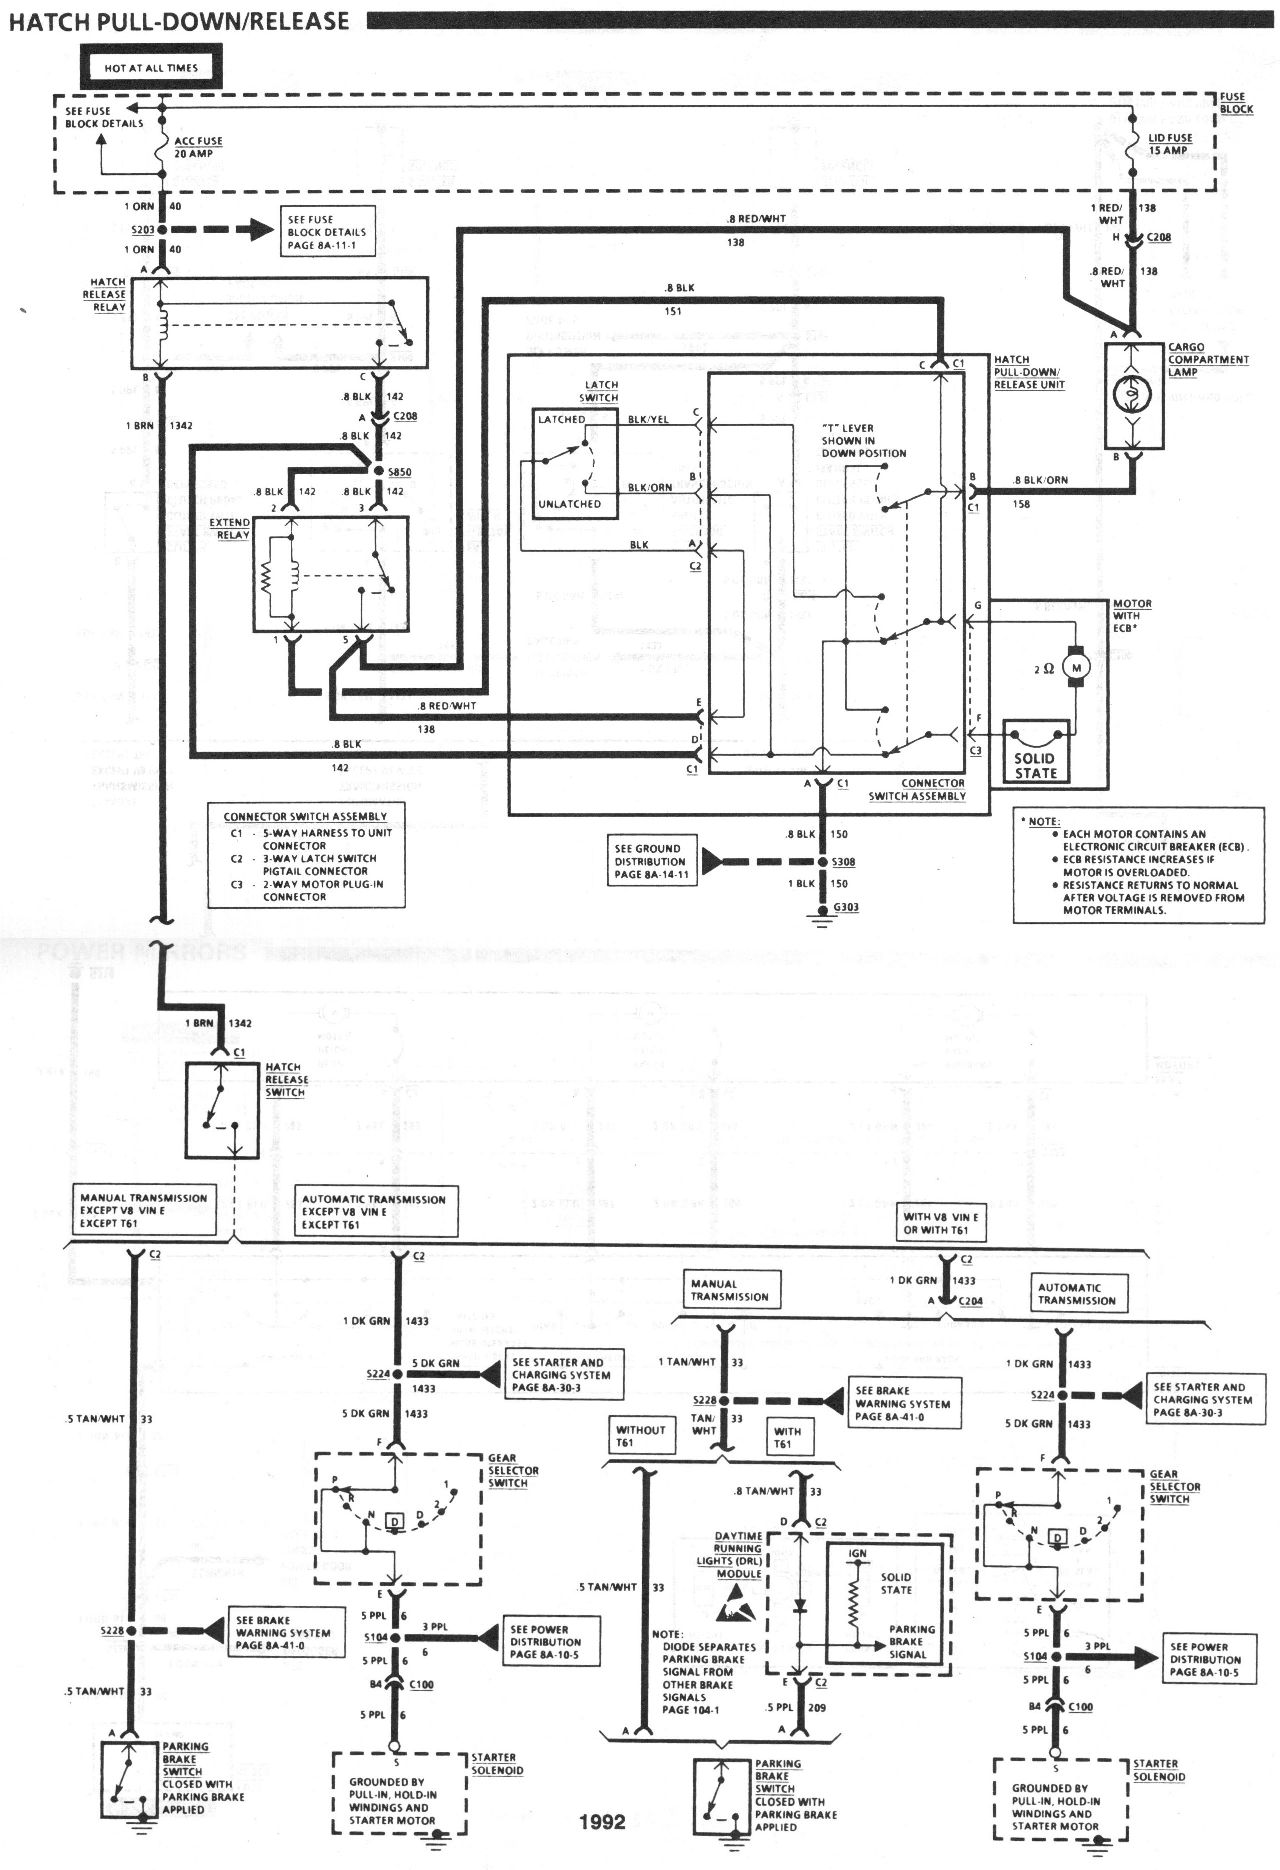 diagram_1992_hatch_pull_down_release 87 iroc no power at the fuse block for \